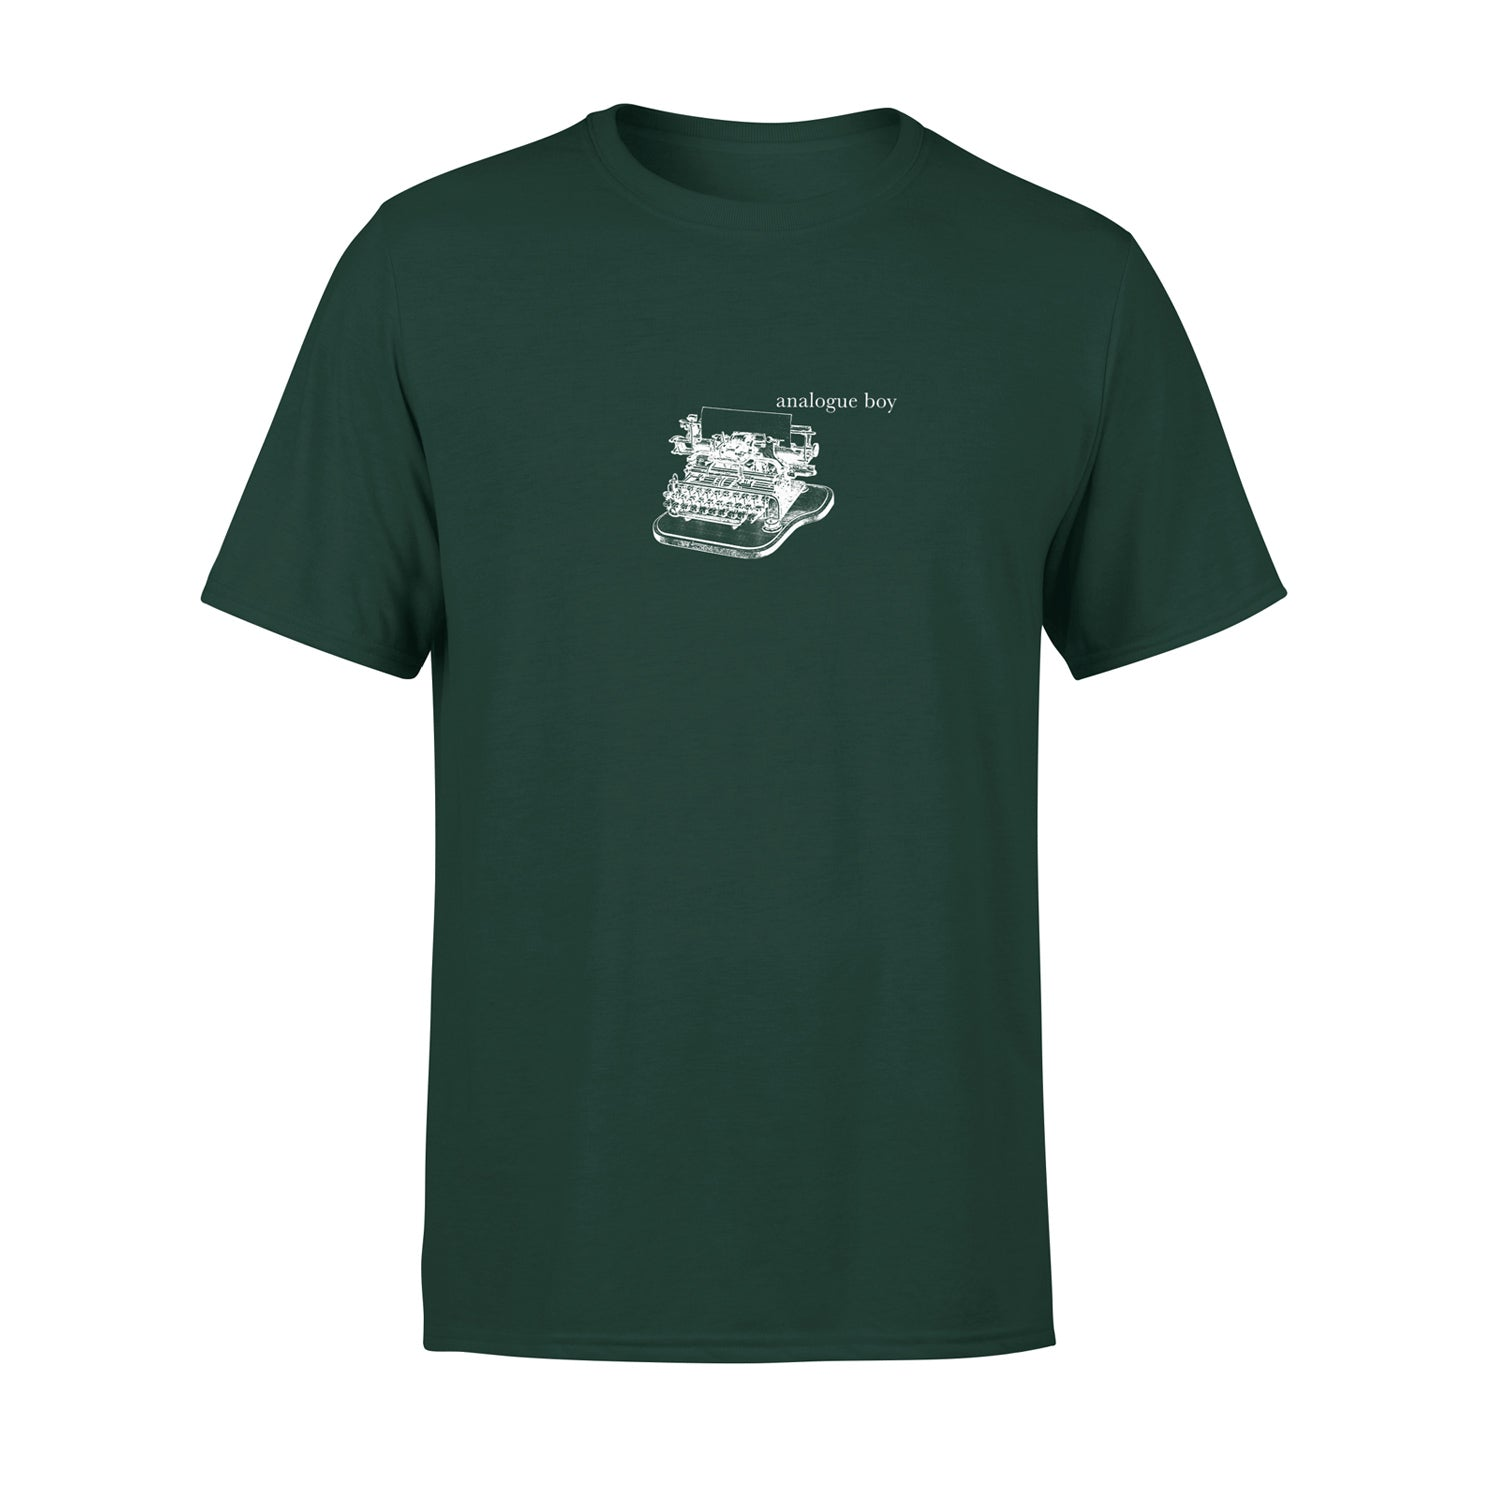 cool mens t shirt in green with vintage illustration of typewriter and the words 'analogue boy' typed next to it